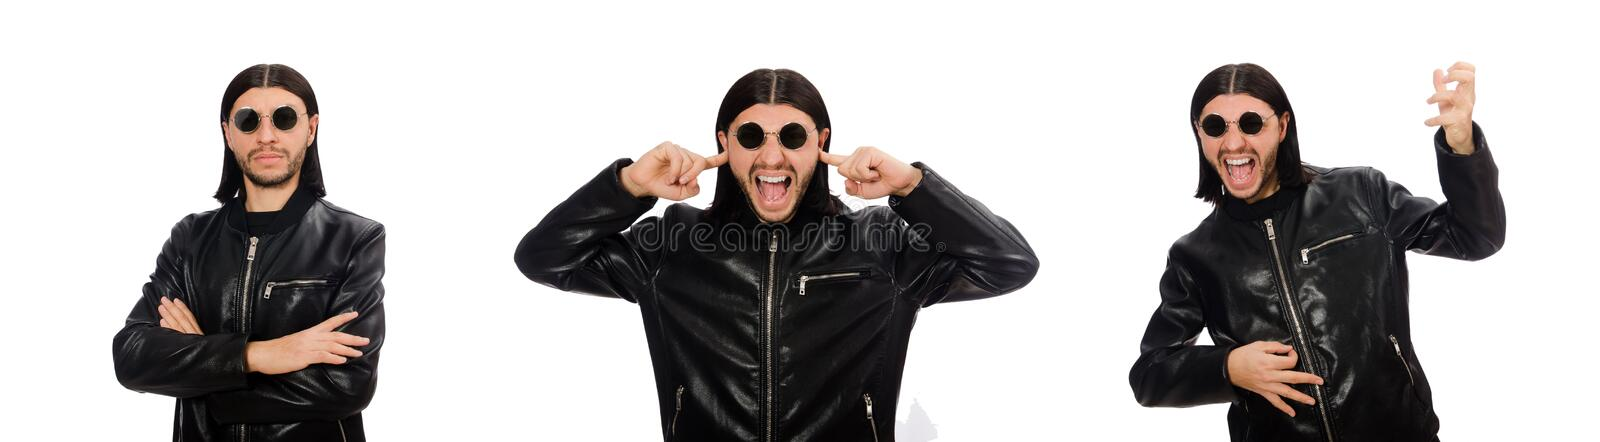 Aggressive angry man isolated on white stock images